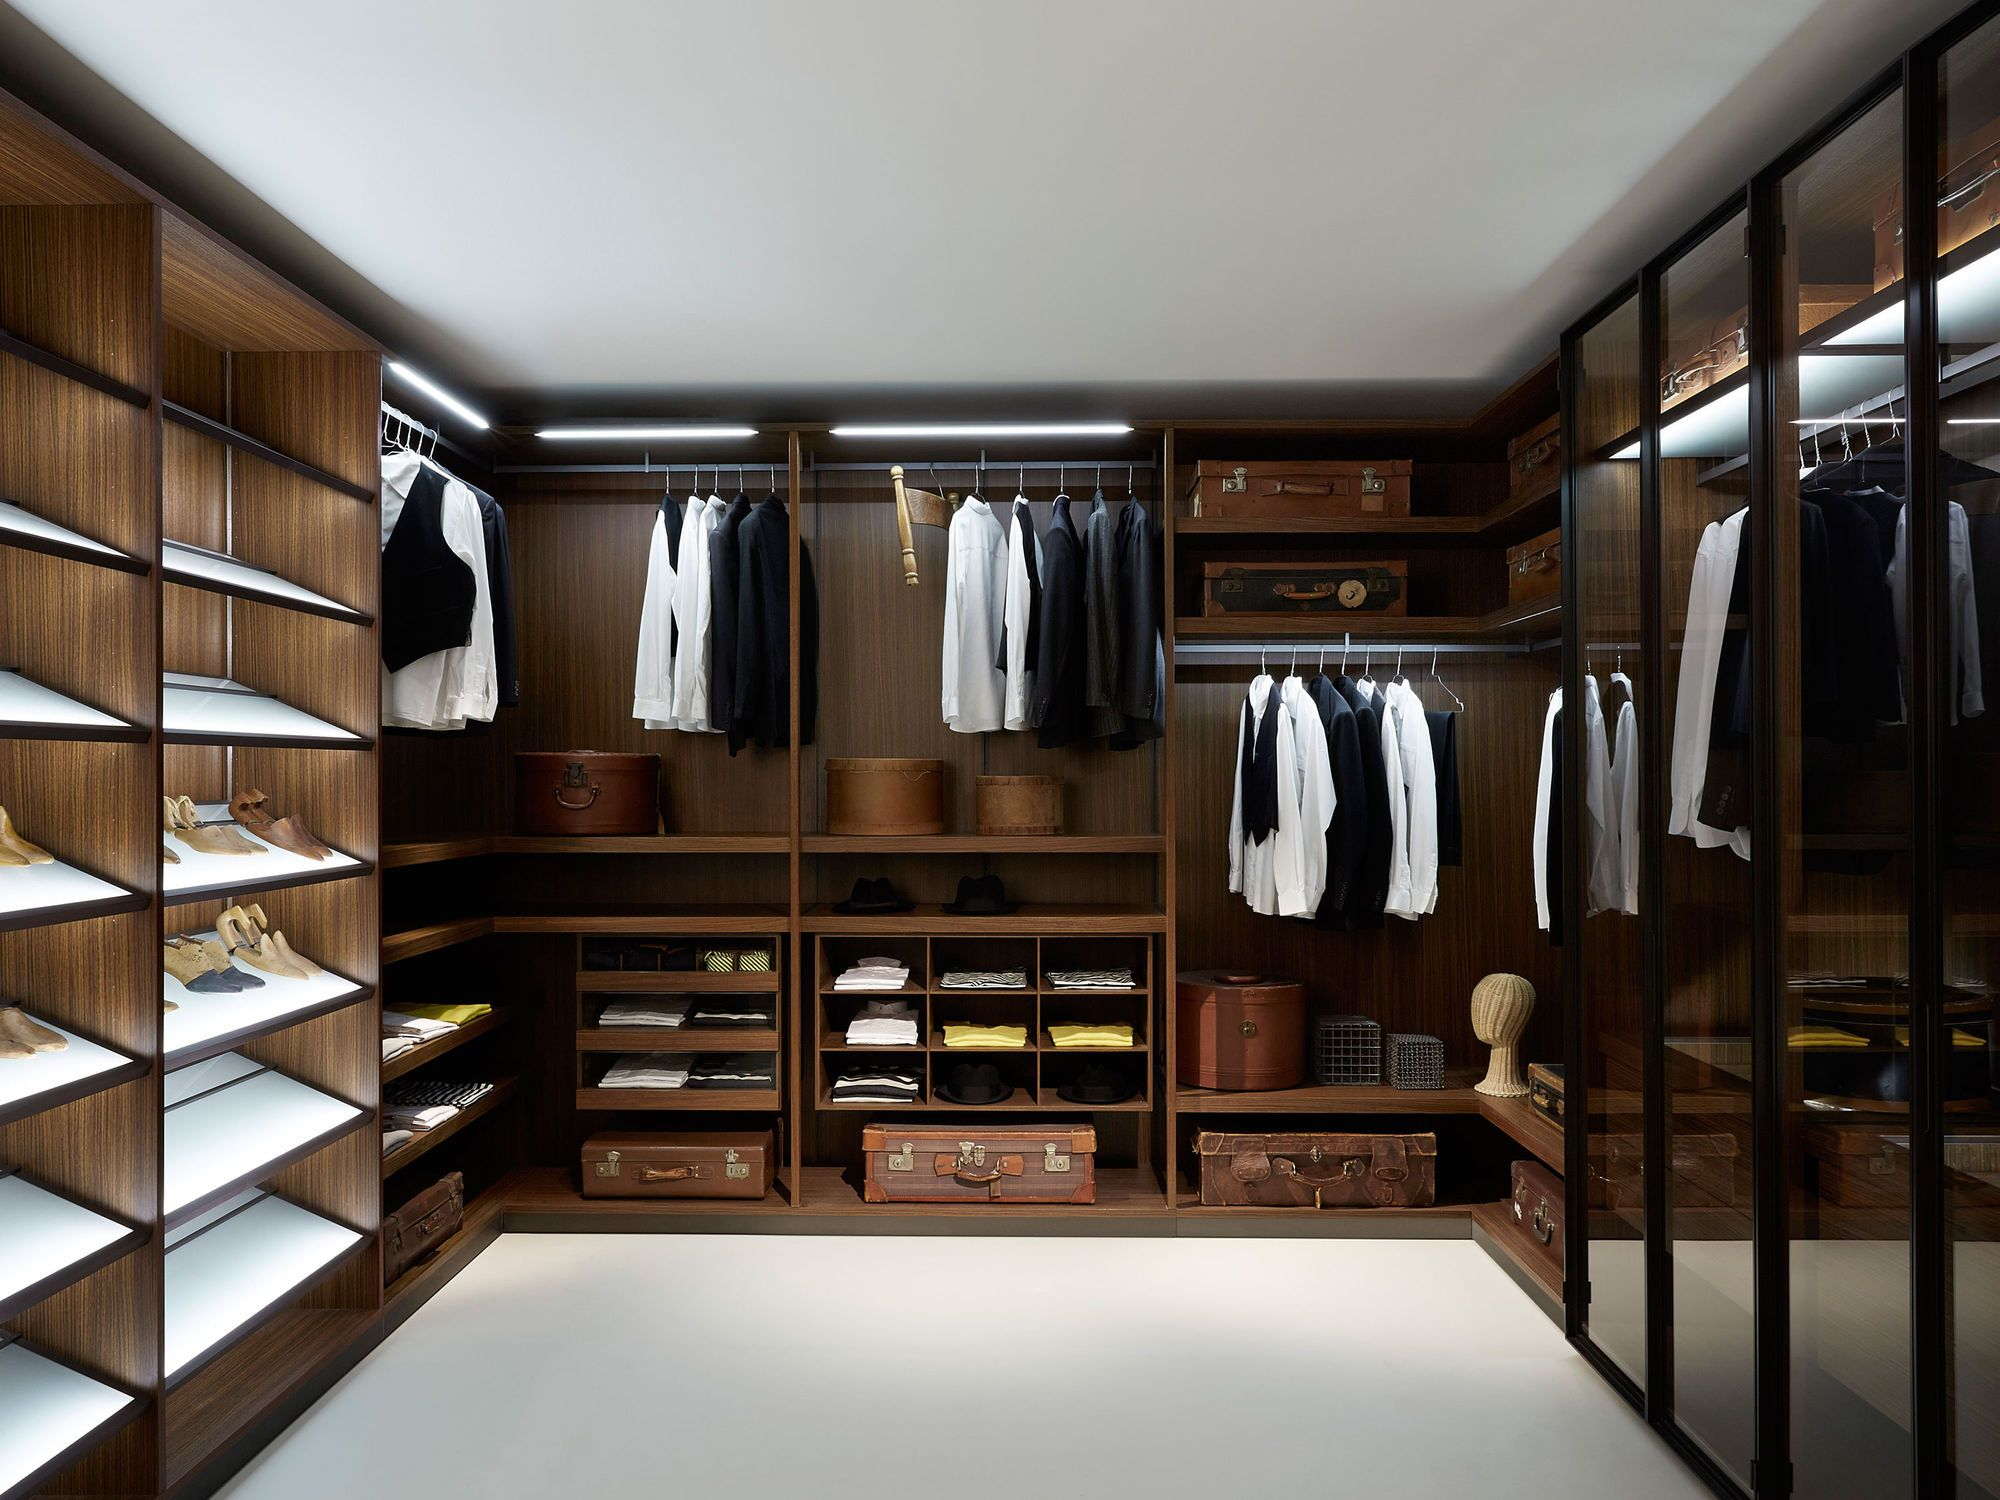 Walk In Closet For Men Masculine Closet Design 15 30 Walk In Closet Ideas  For Men Who Love Their Image